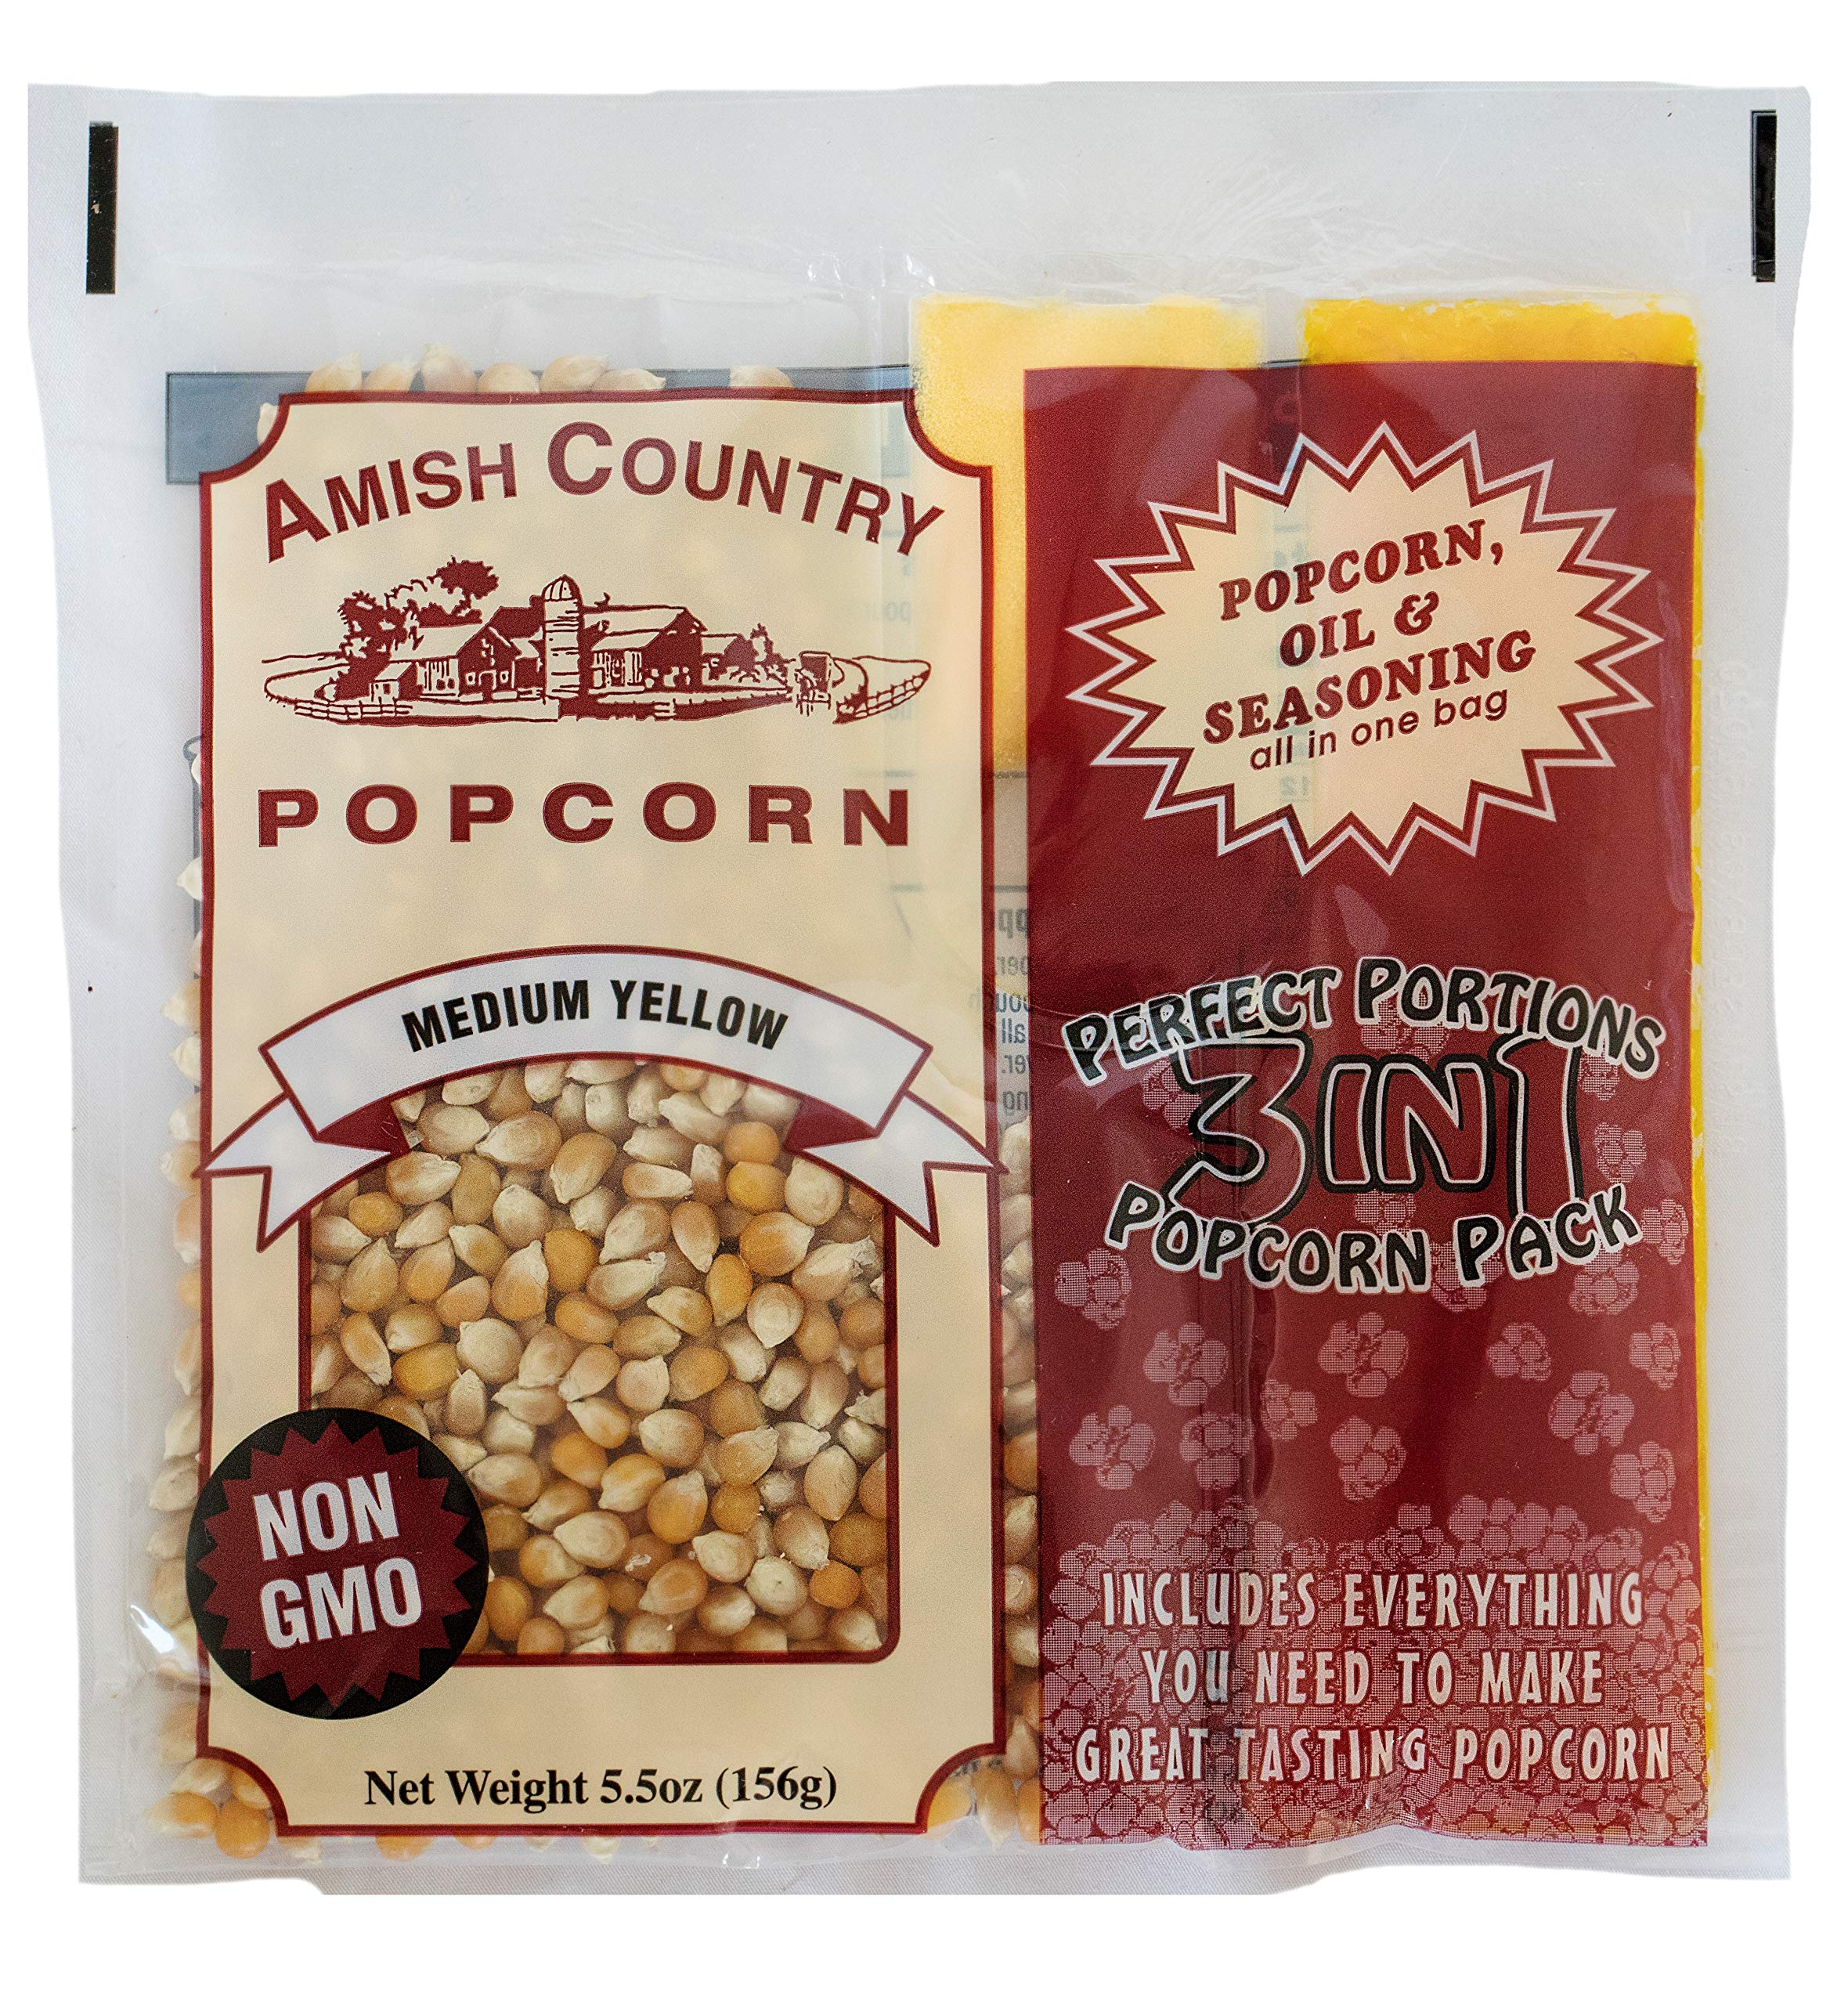 Amish Country Popcorn - (24) 4 Ounce Popcorn Portion Packs of Medium Yellow Popcorn, Oil & Salt - 24 Per Case - Old Fashioned with Recipe Guide by Amish Country Popcorn